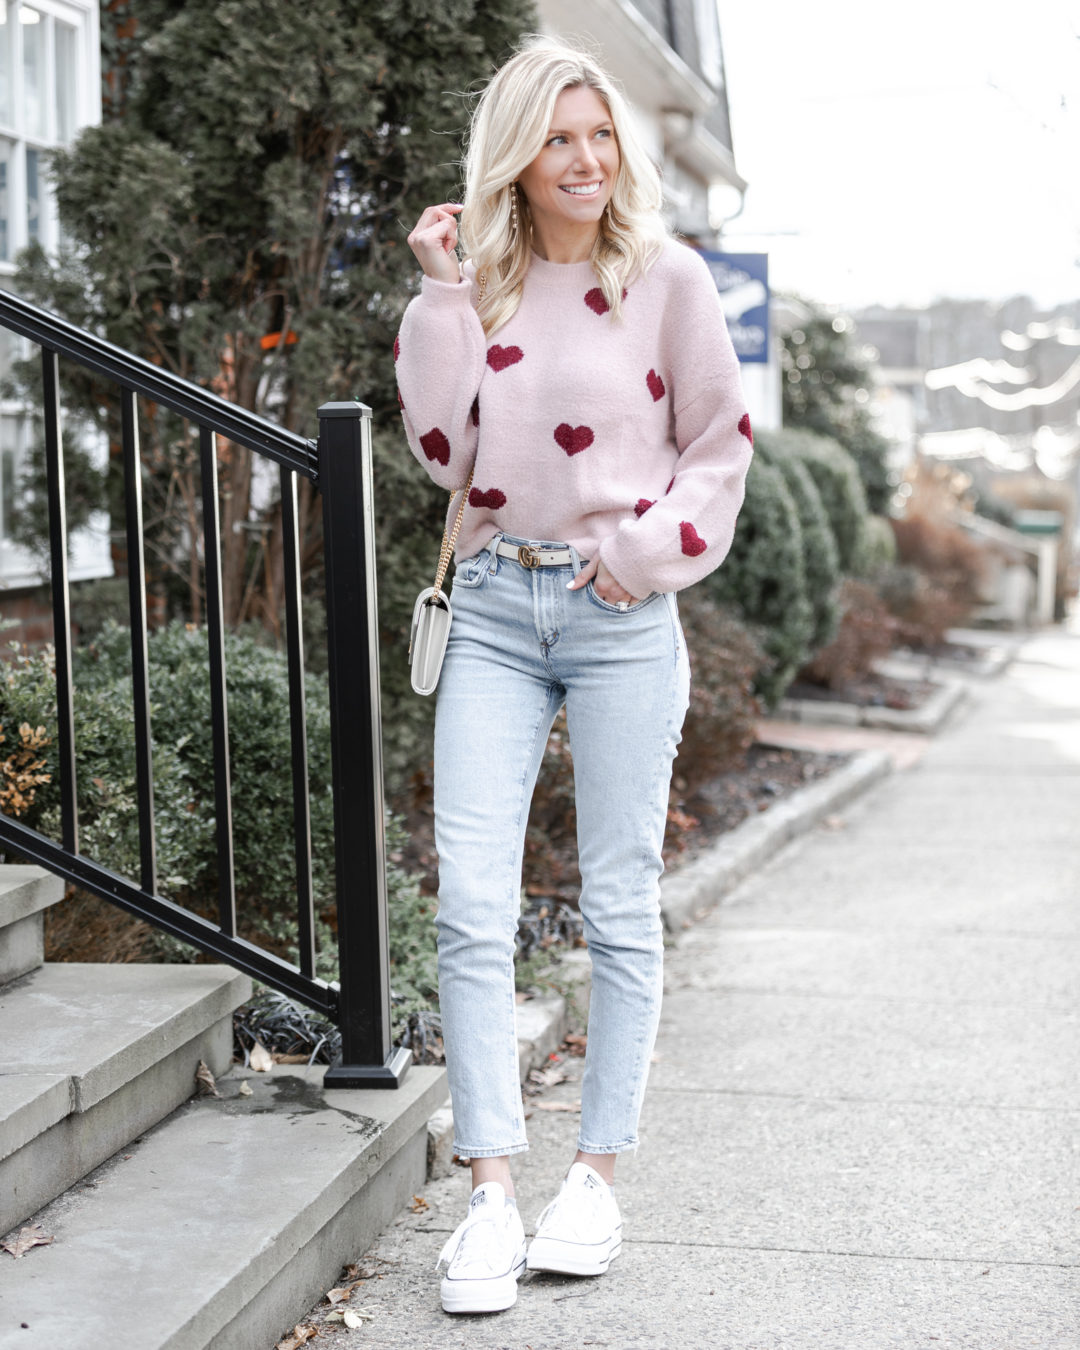 heart-sweater-and-cutoff-white-wash-jeans-the-glamorous-gal